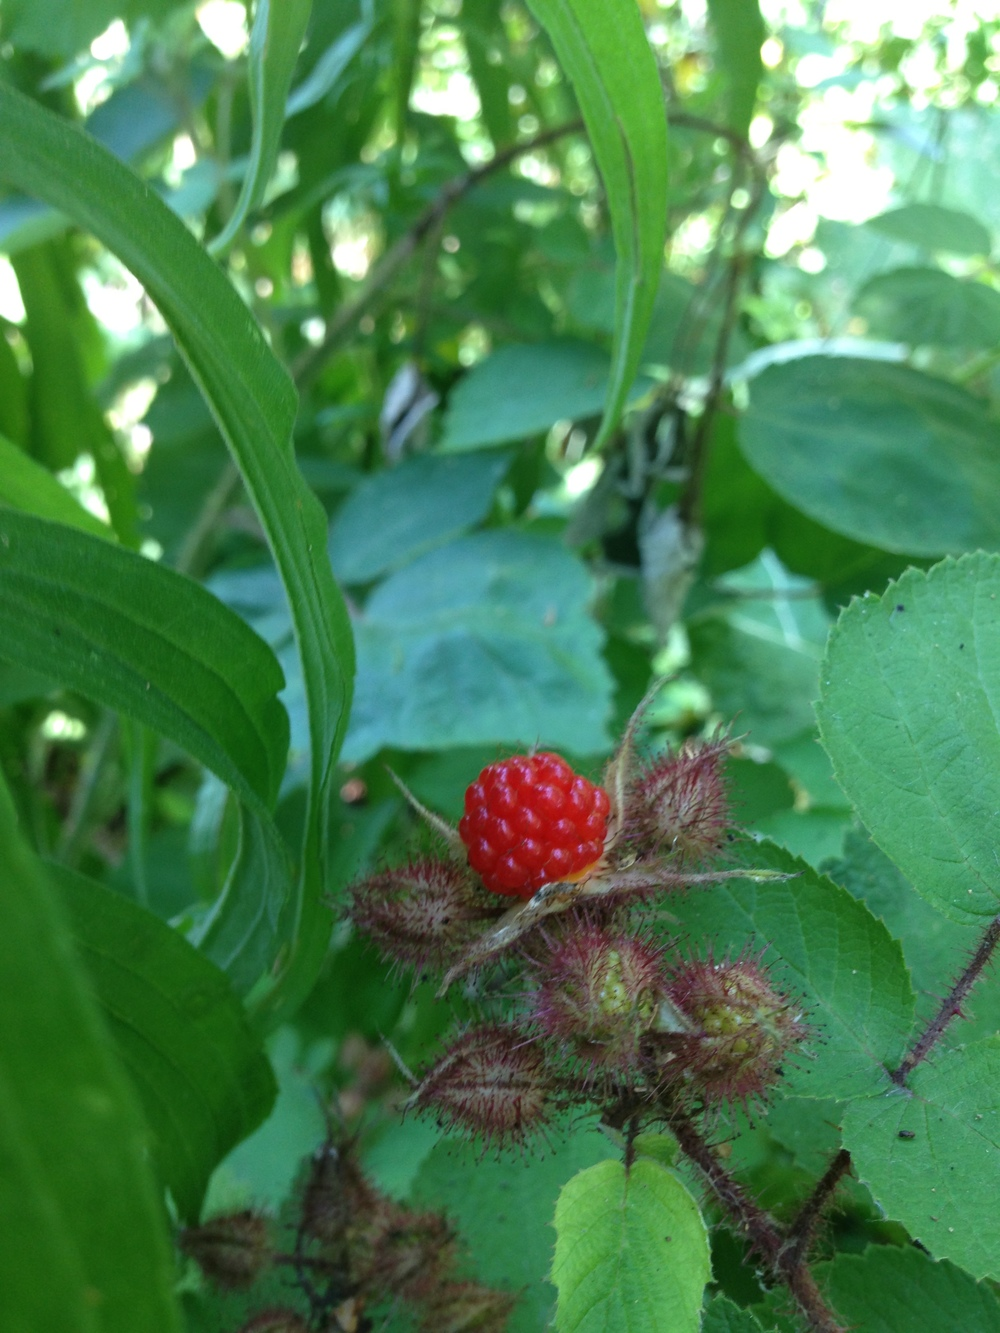 The wineberries will ripen to a deep orange red, and will release from the bush easily when they are ready. Of all the berries, these are my absolute favorite. They have a raspberry/citrus flavor.